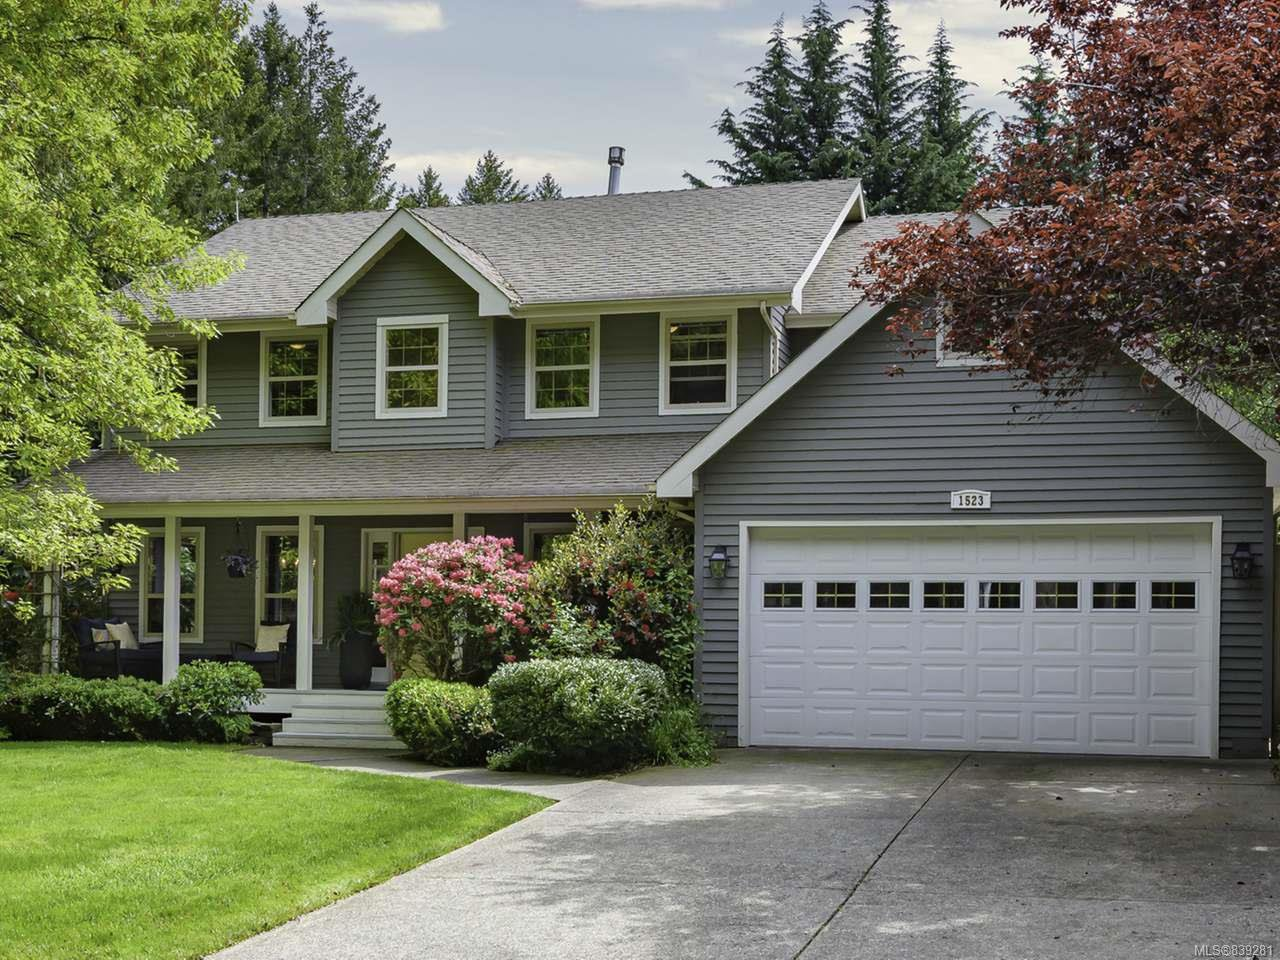 Main Photo: 1523 Eton Rd in COMOX: CV Comox (Town of) Single Family Detached for sale (Comox Valley)  : MLS®# 839281